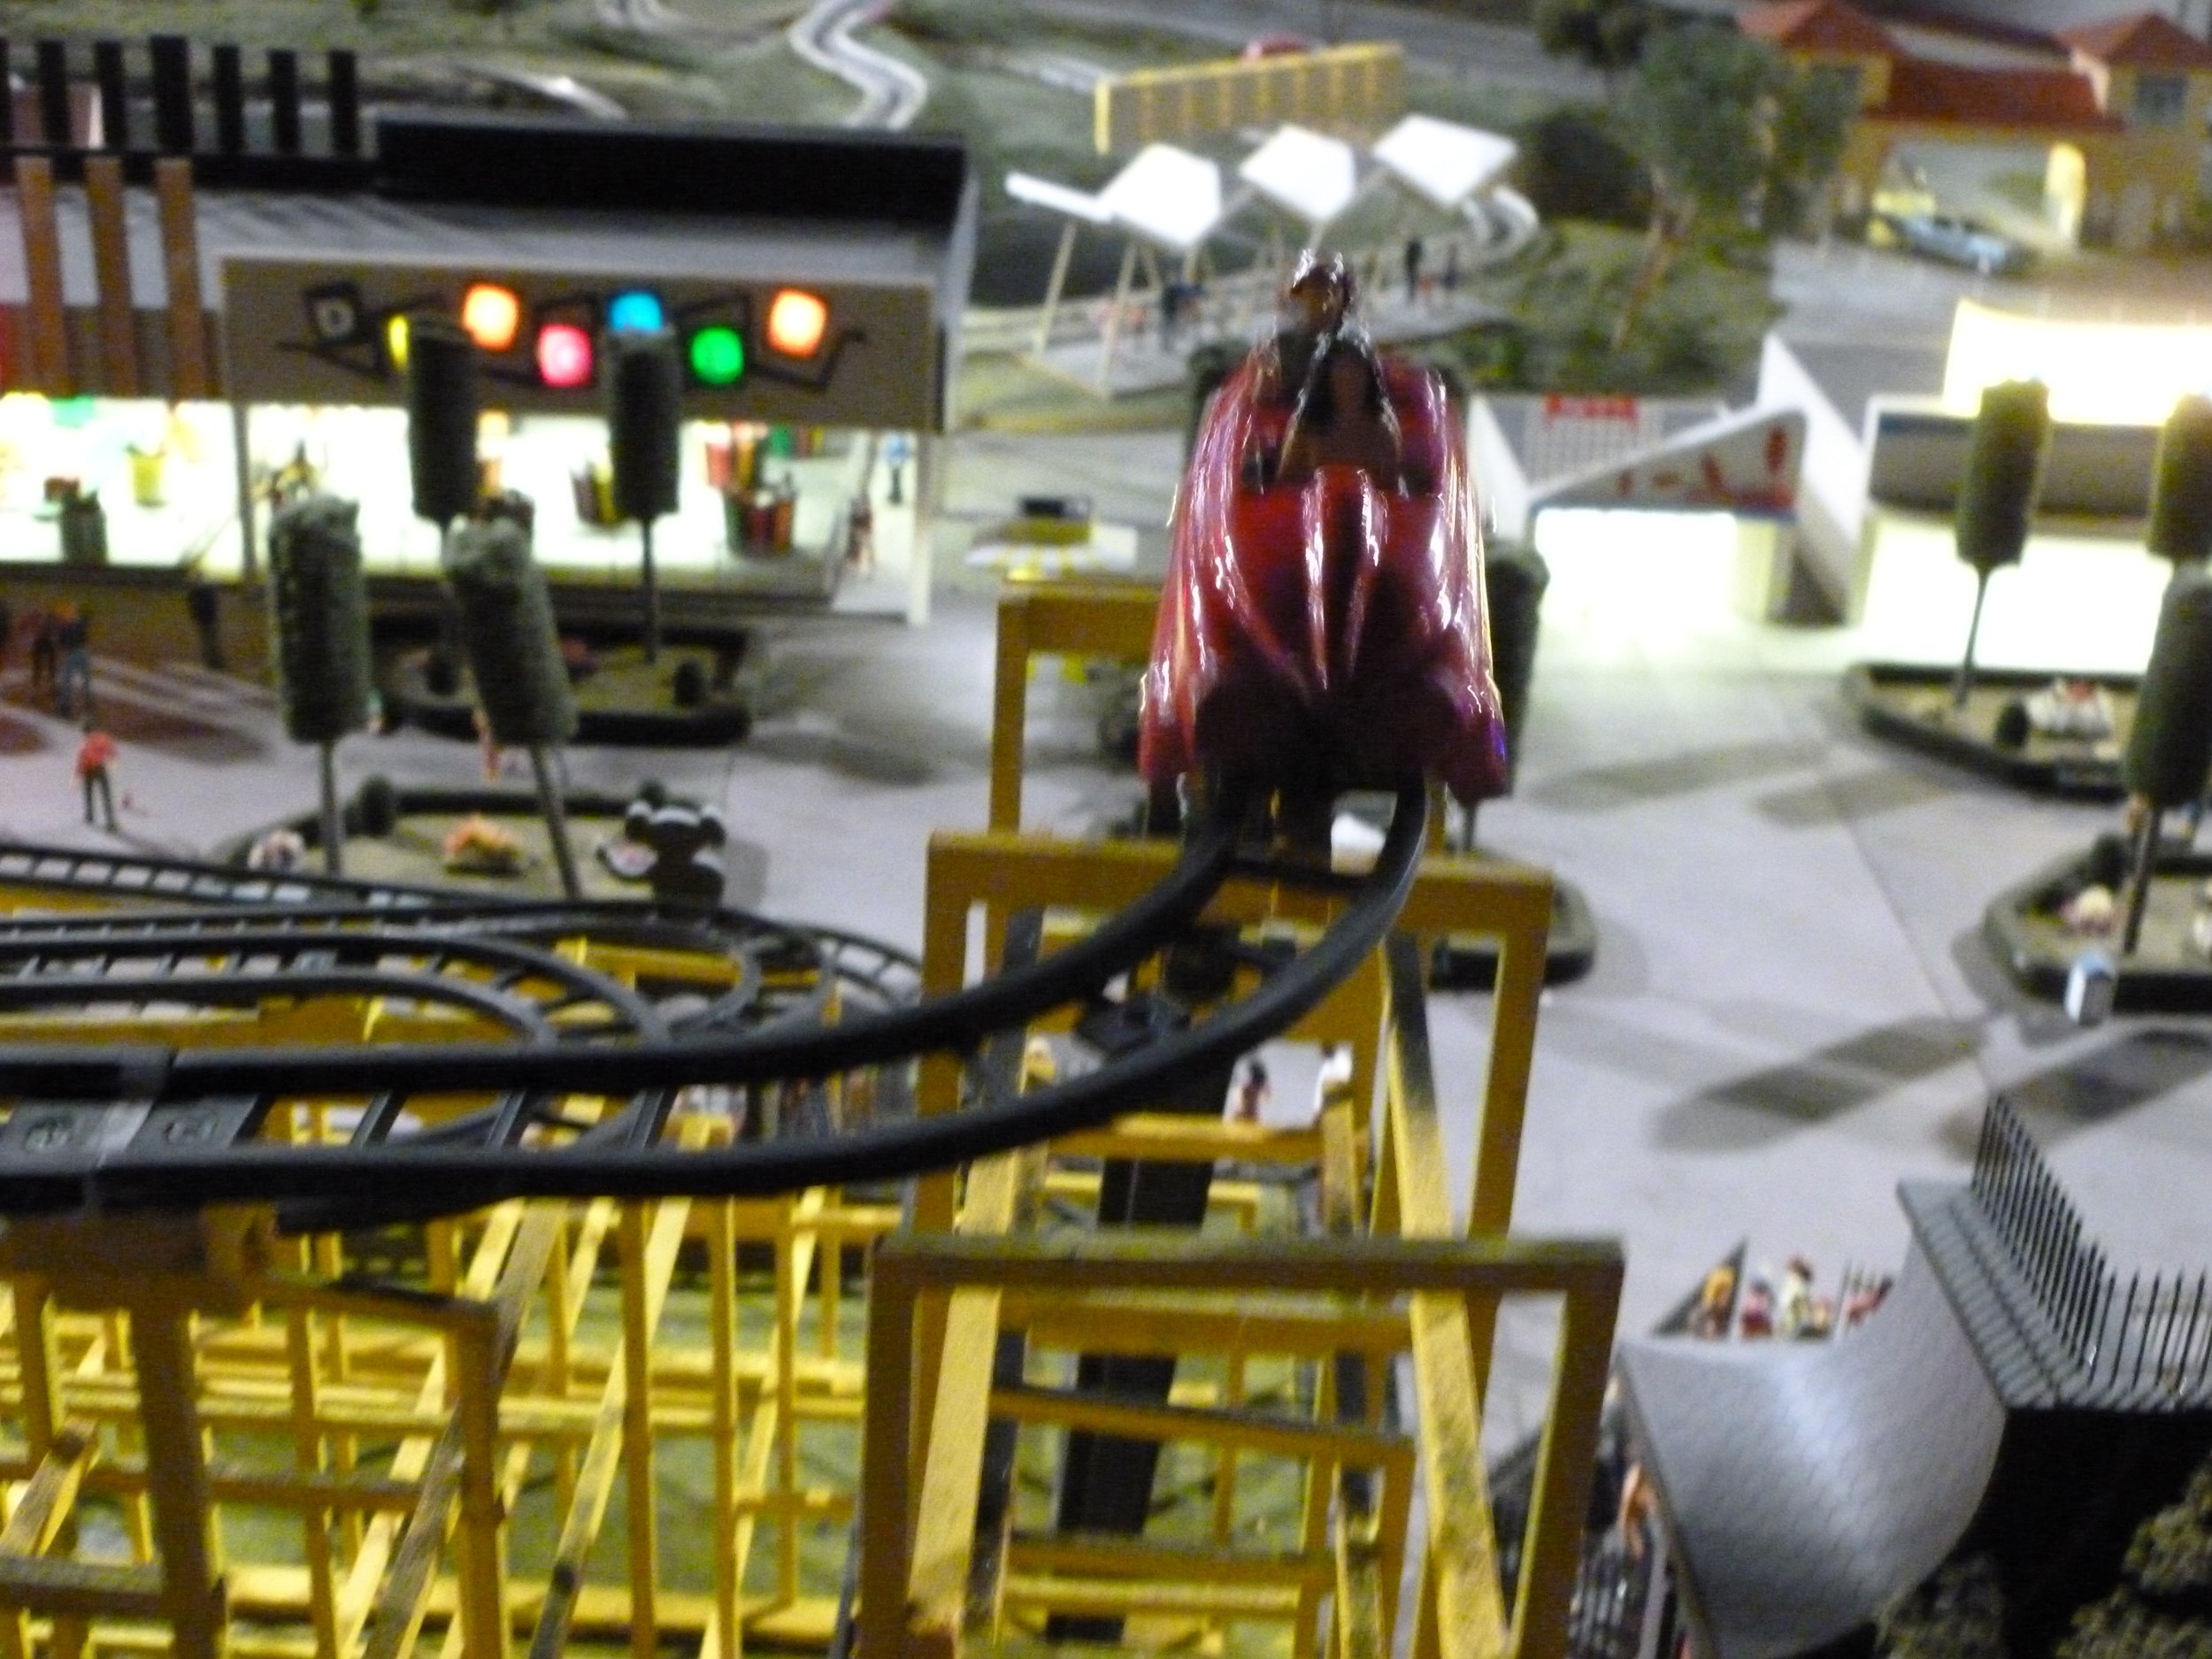 """The Wild Mouse model. I neglected to get any good footage of it operating, but if you do a Goolgle search """"Entertrainment Junction Coney Island Wild Mouse"""" you should be able to locate some."""